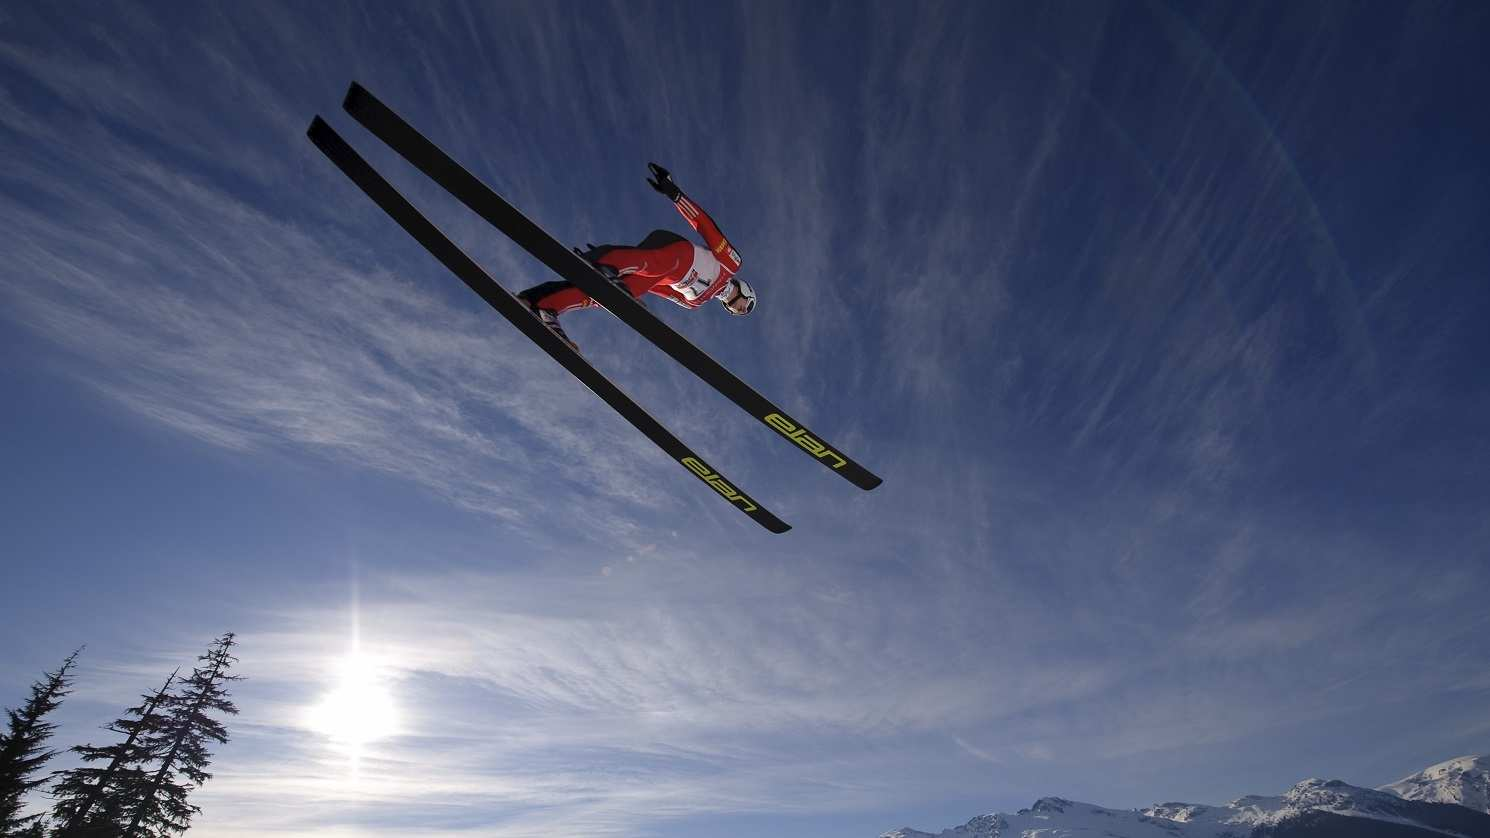 Skier-ski-jump-fly-sky-sun-mountains-4k-3840x2160